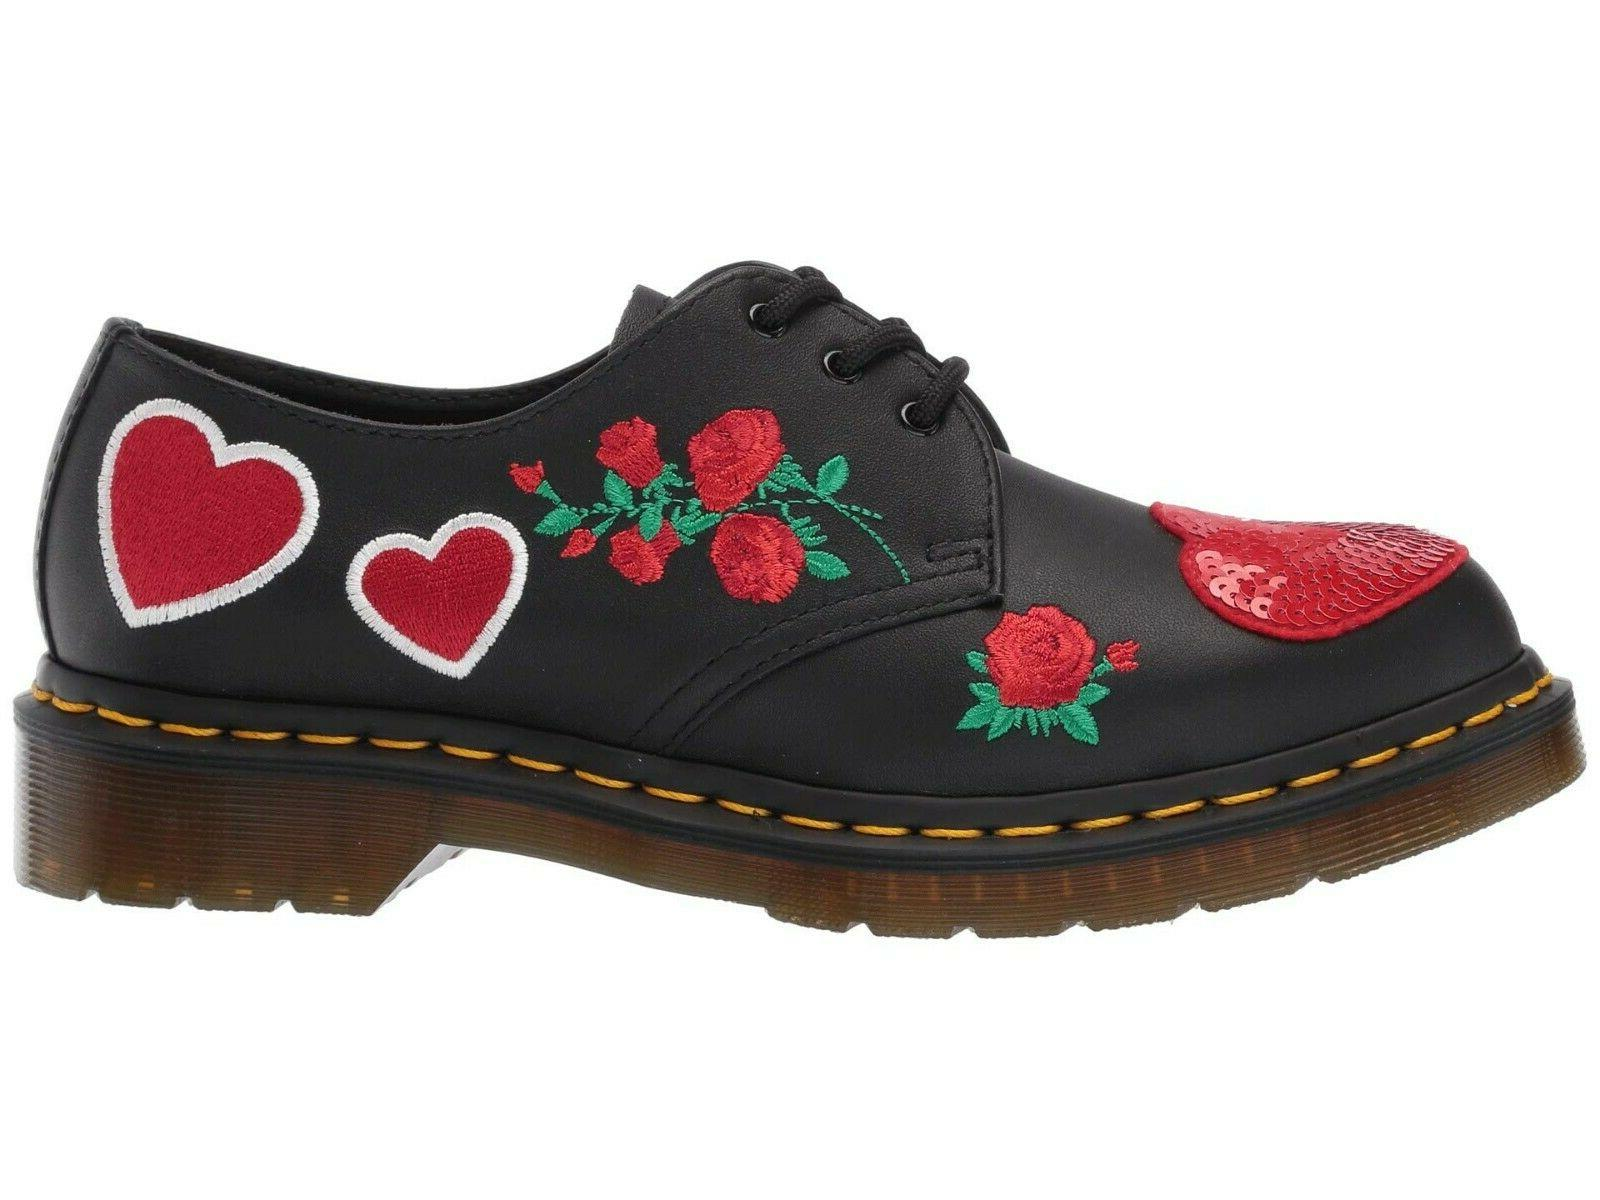 Women's Dr. 1461 SEQUIN HEARTS Leather Oxfords 24414001 BLACK